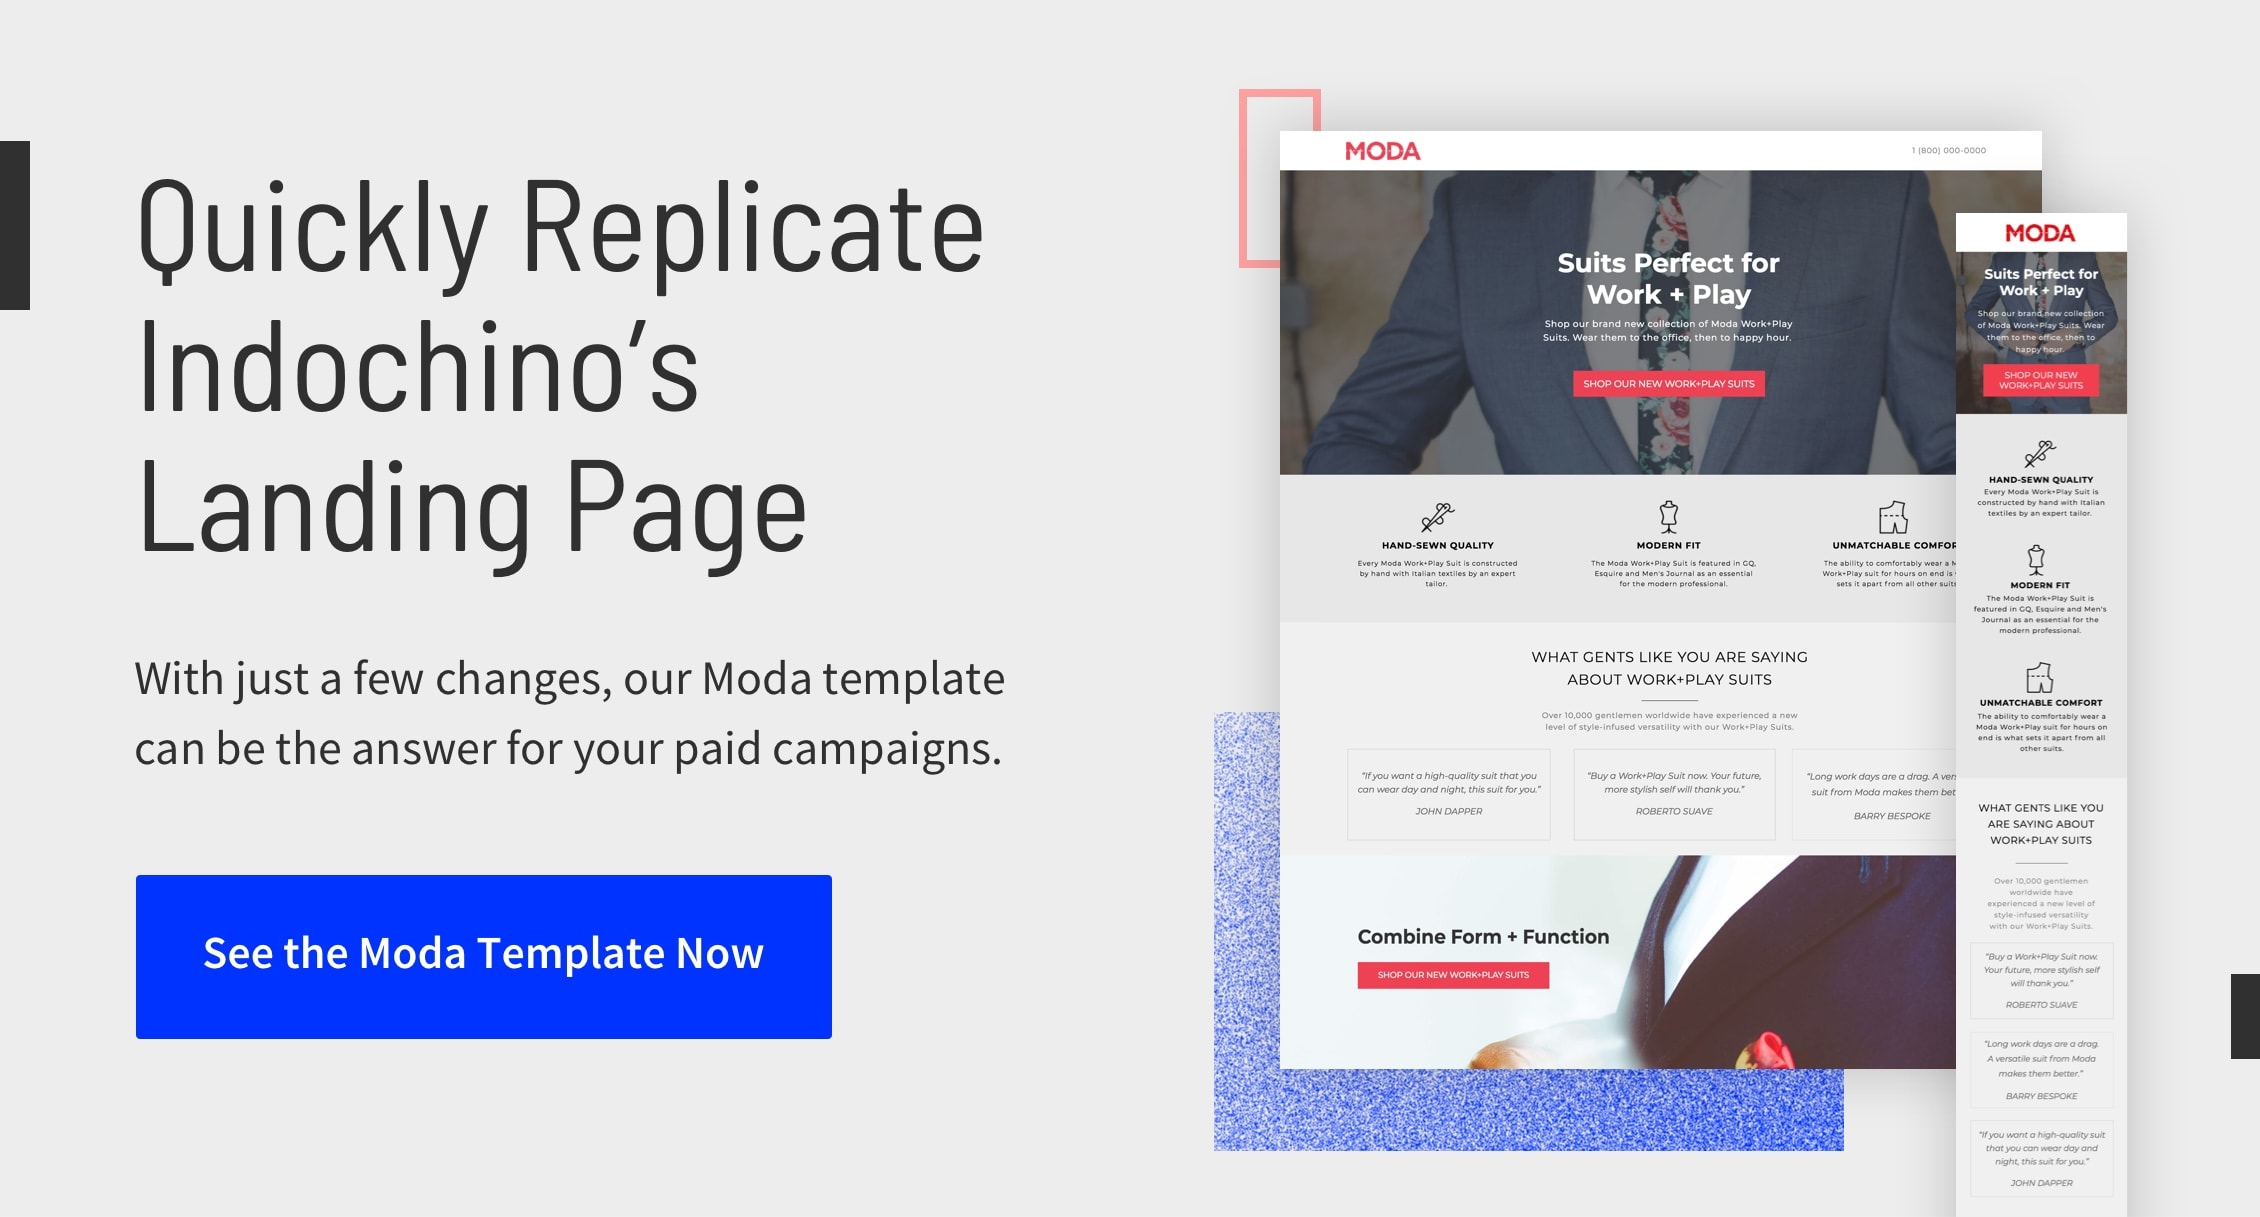 Quickly Replicate Indochino's Landing Page - Get the Template